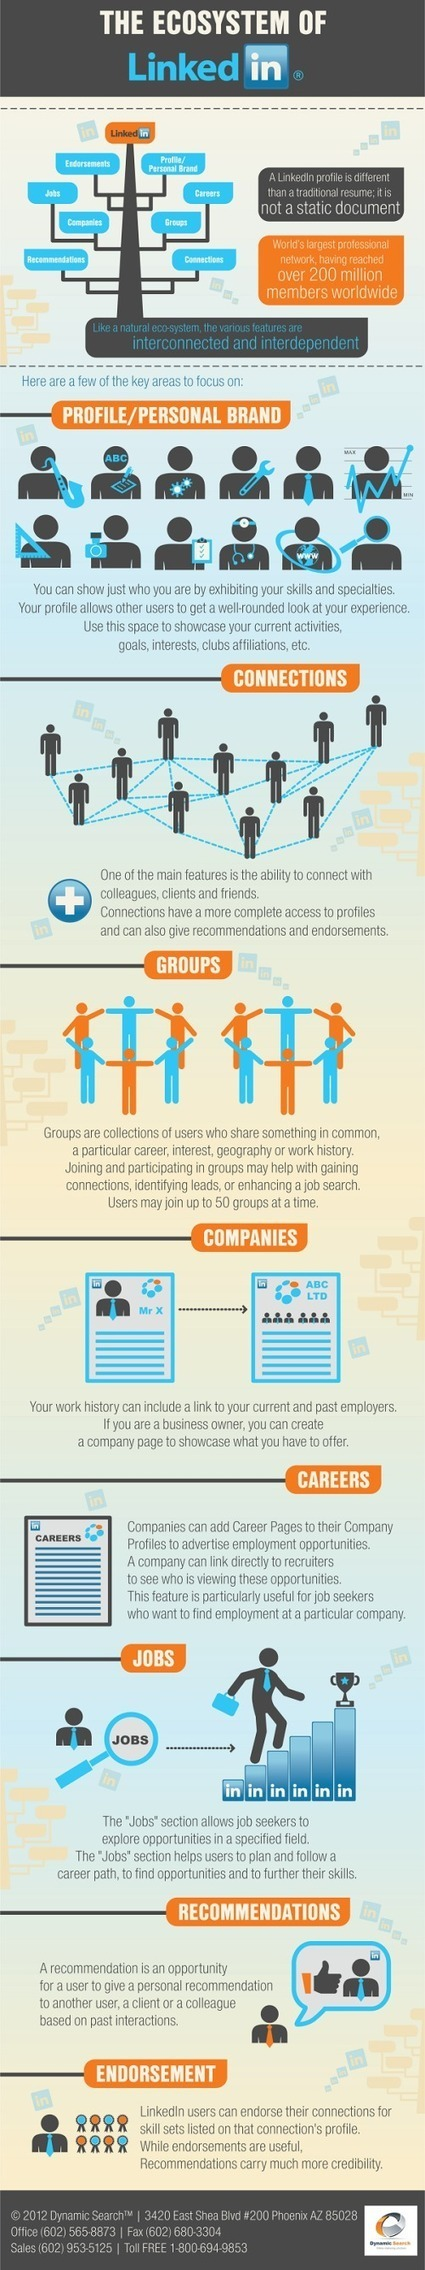 The Ecosystem of Linkedin - Blog About Infographics and Data Visualization - Cool Infographics | Employer branding | Scoop.it